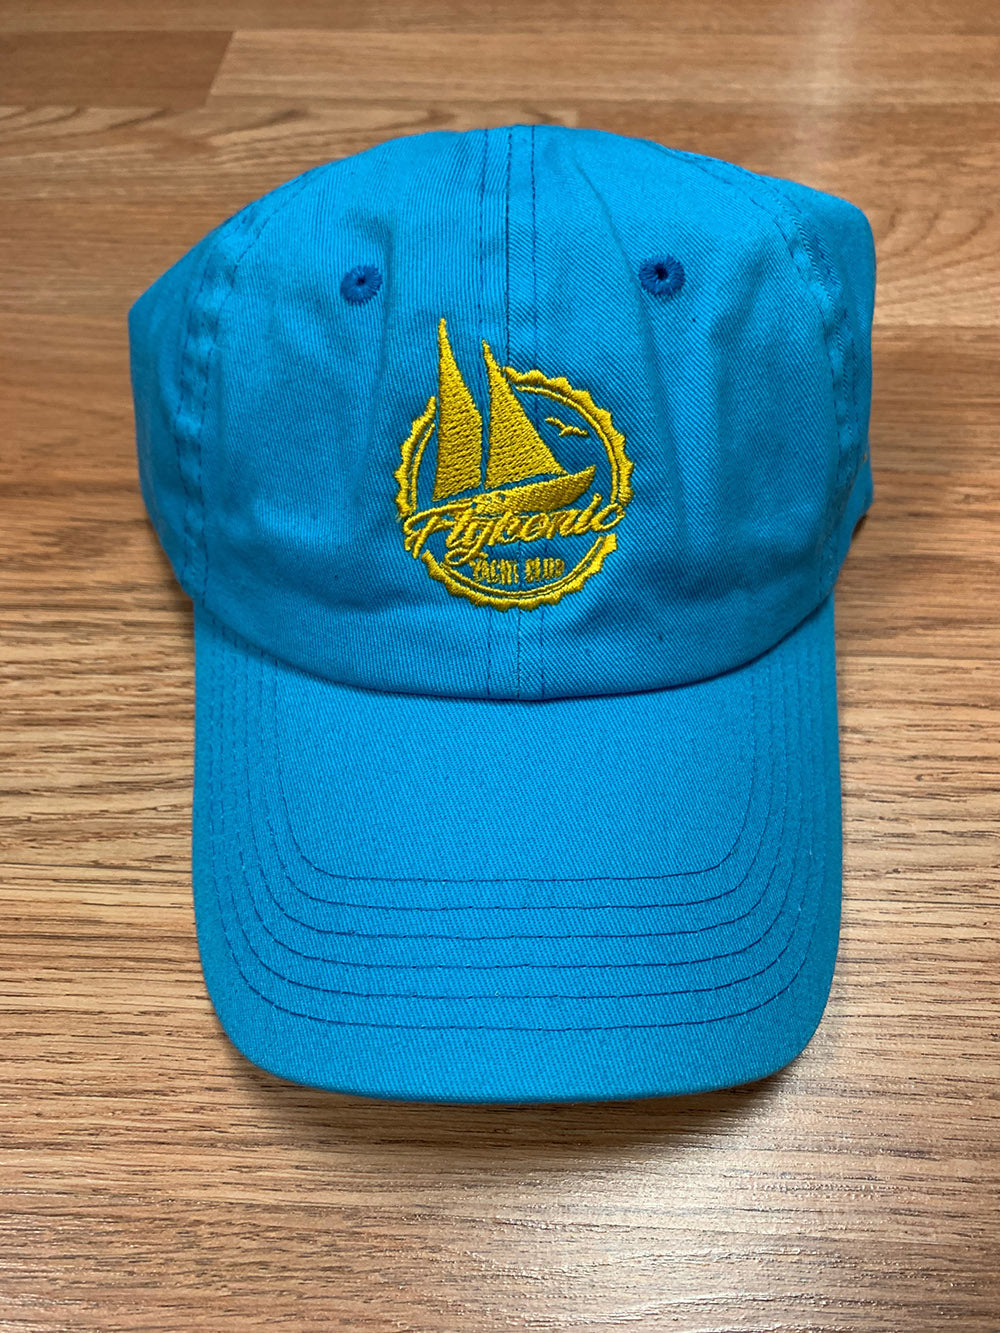 Flykonic Yacht Club Dad Hat on blue with yellow thread.